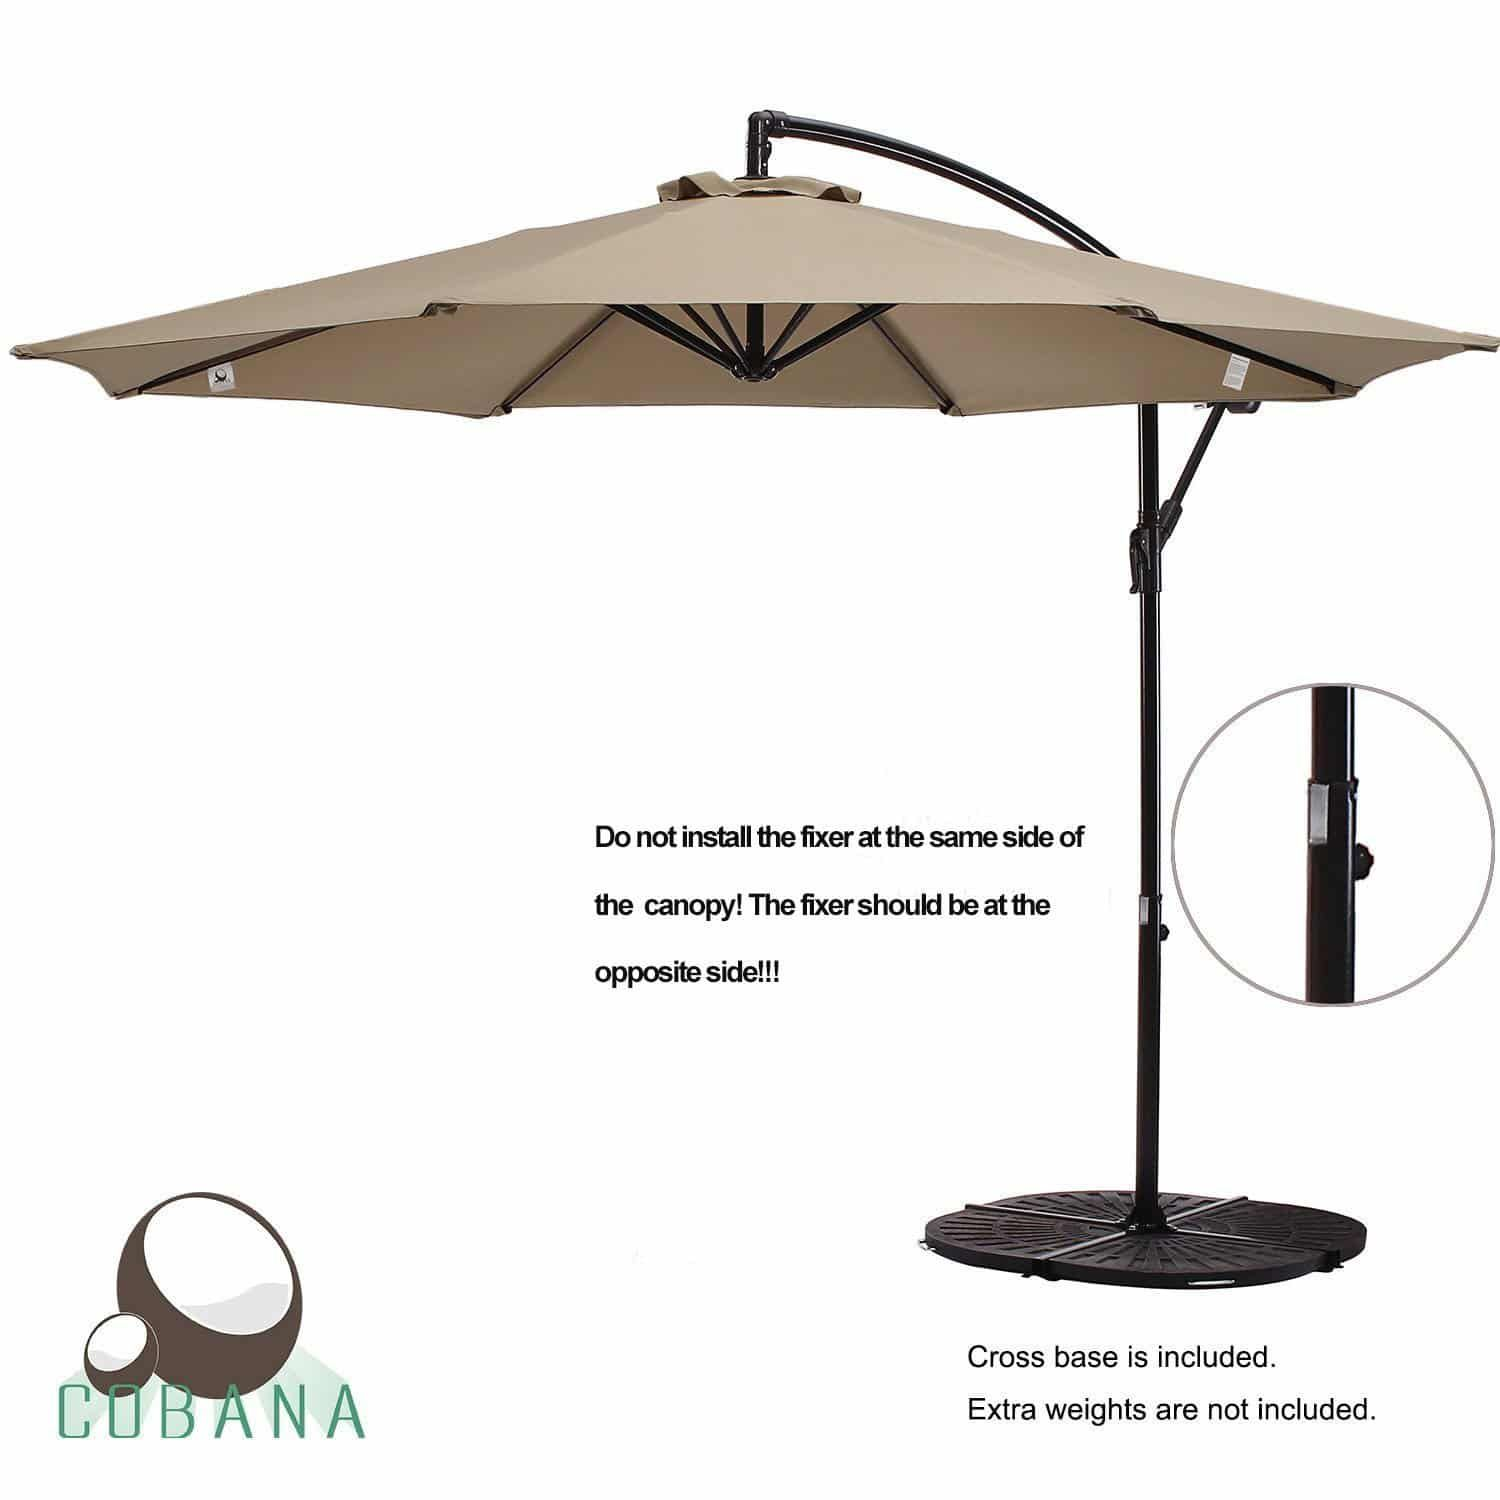 Top 15 Best Offset Patio Umbrellas In 2020 Reviews Offset Patio Umbrella Patio Umbrellas Patio Umbrella